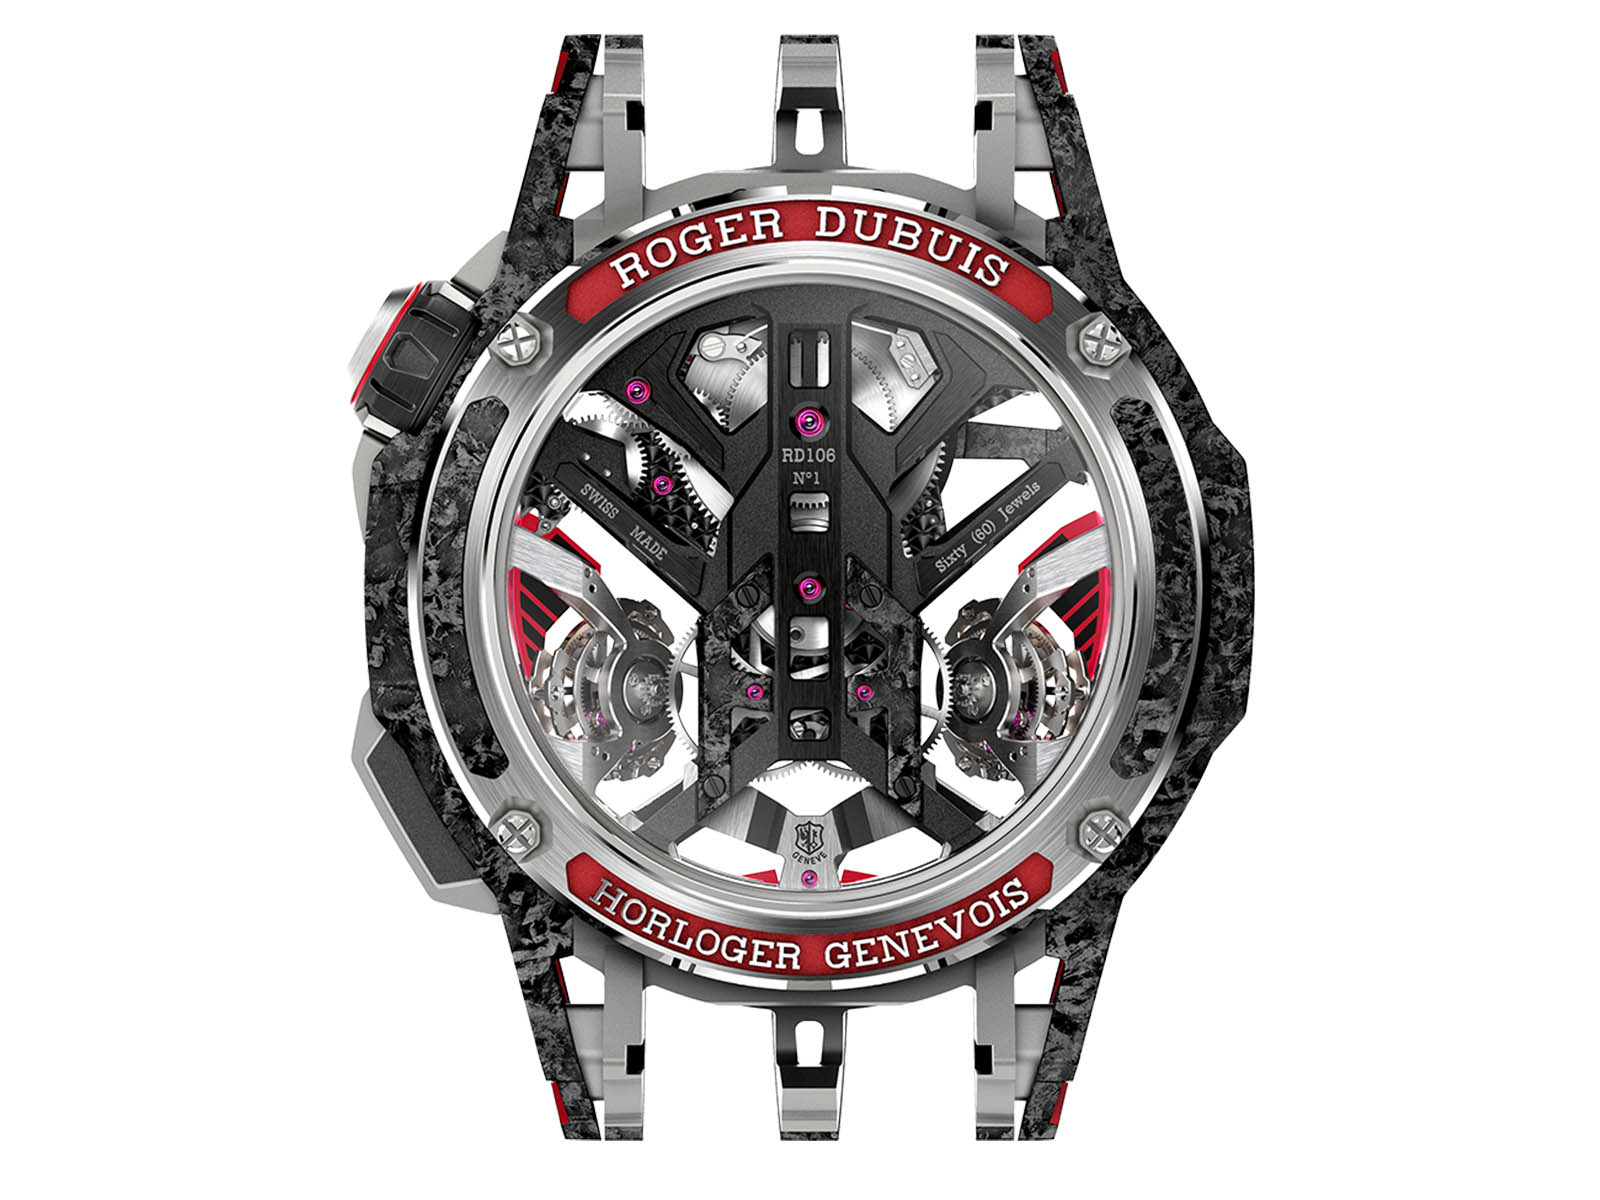 rddbex0765-roger-dubuis-excalibur-one-off-5.jpg